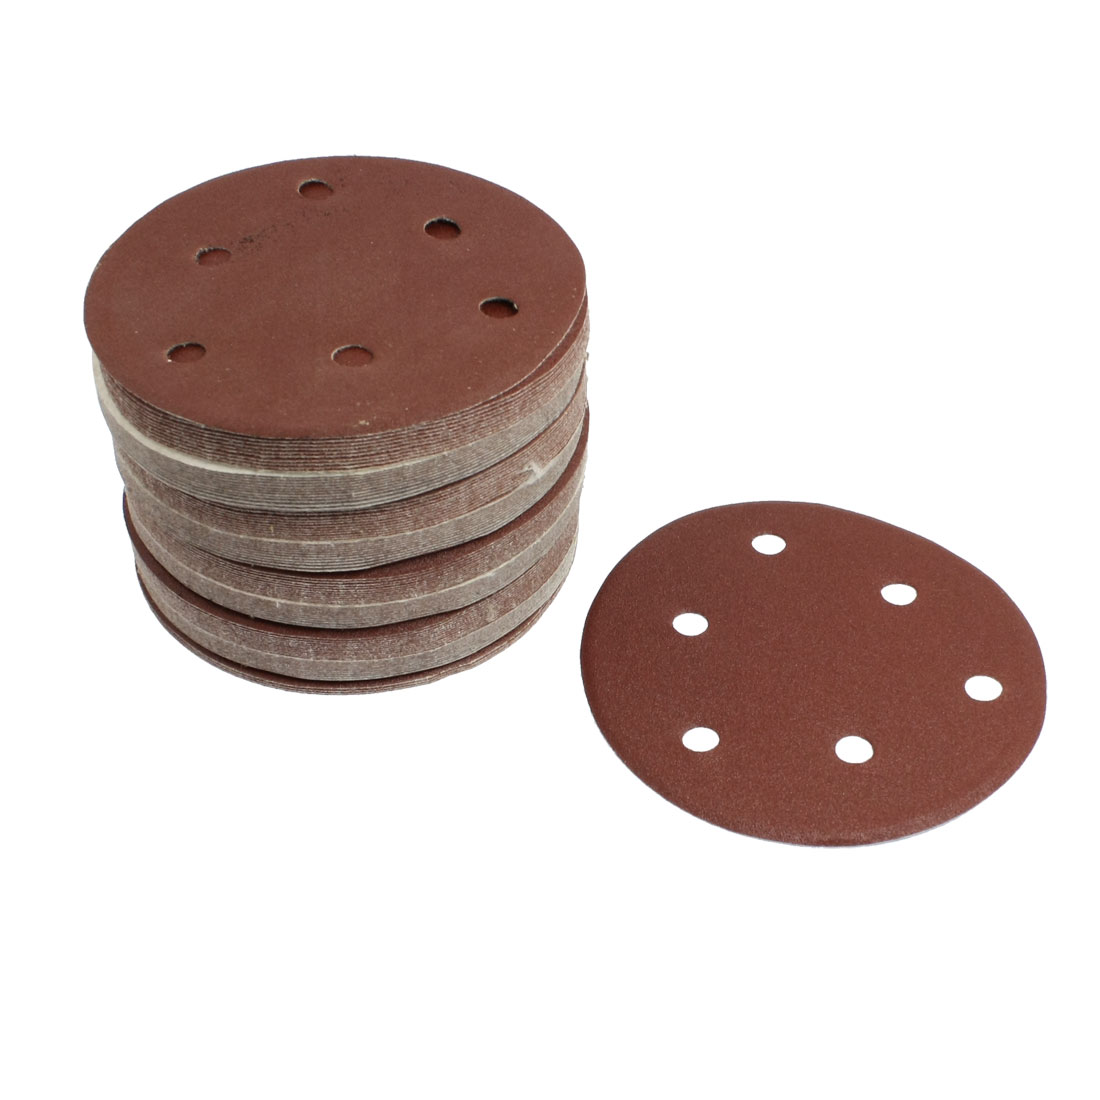 "100 Pcs 150 Grit 6 Hole 5"" Diameter Sandpaper Hook Loop Sanding Disc 125mm"